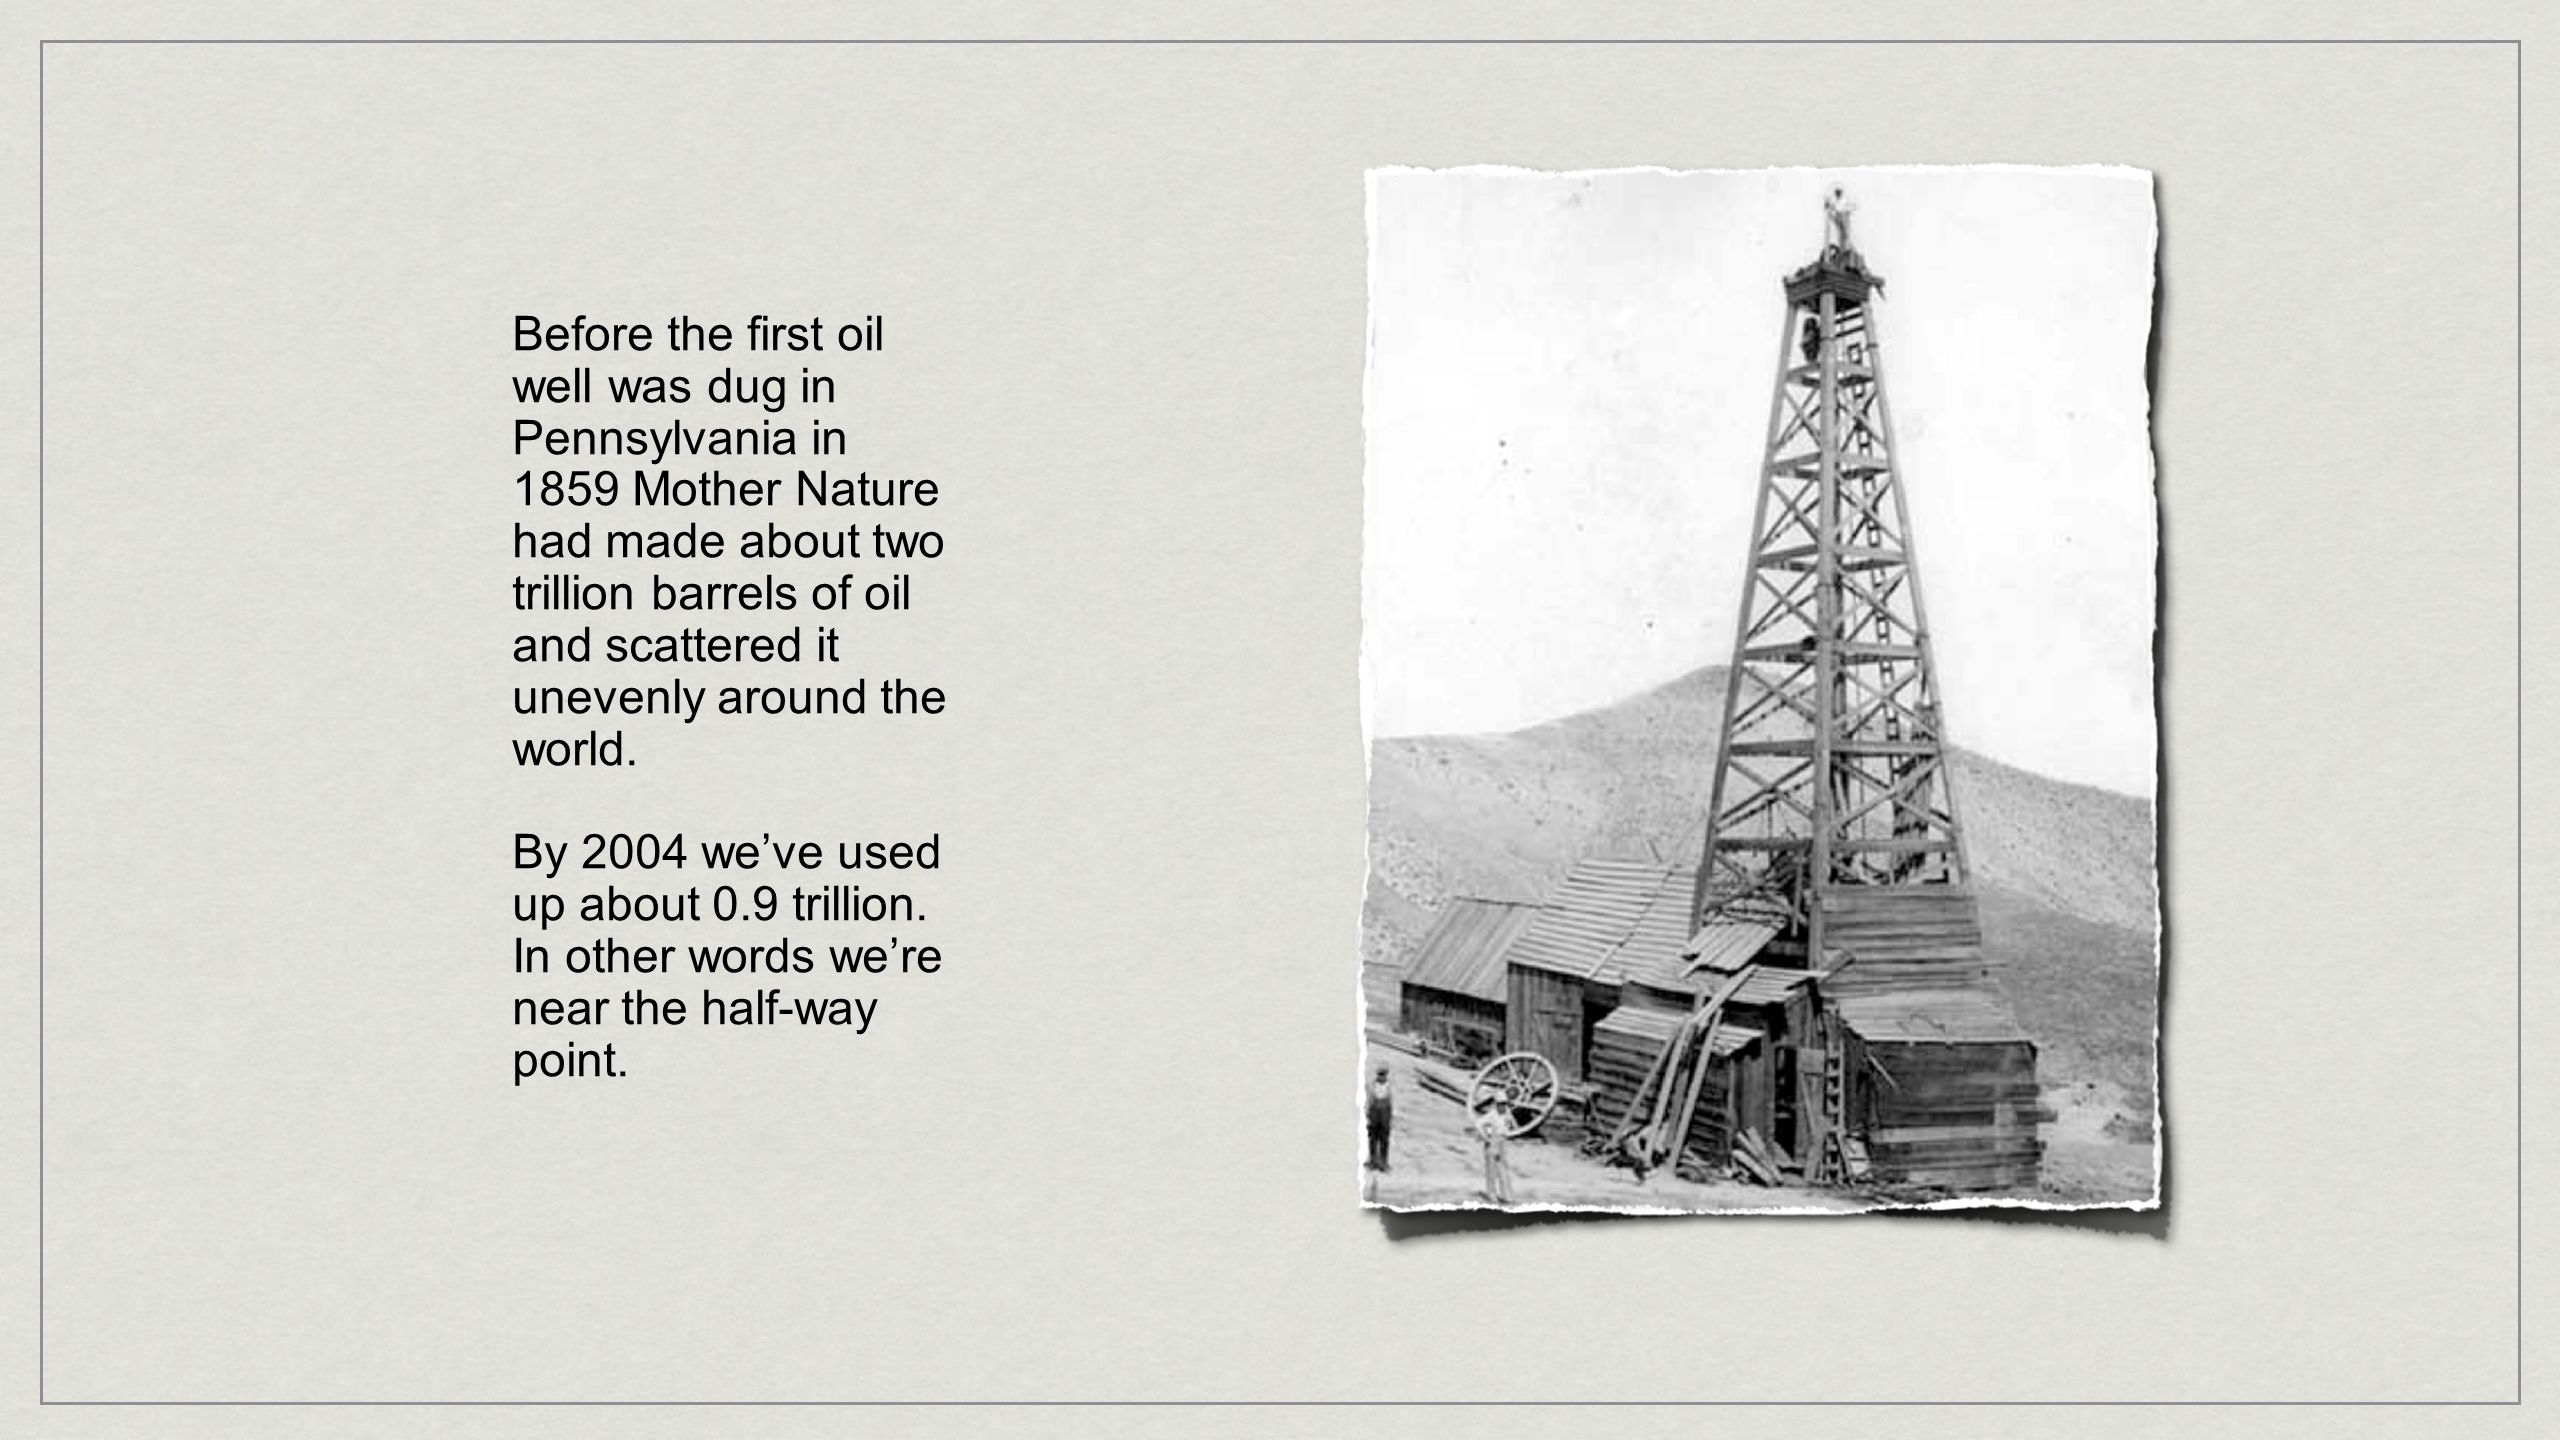 Before the first oil well was dug in Pennsylvania in 1859 Mother Nature had made about two trillion barrels of oil and scattered it unevenly around the world.